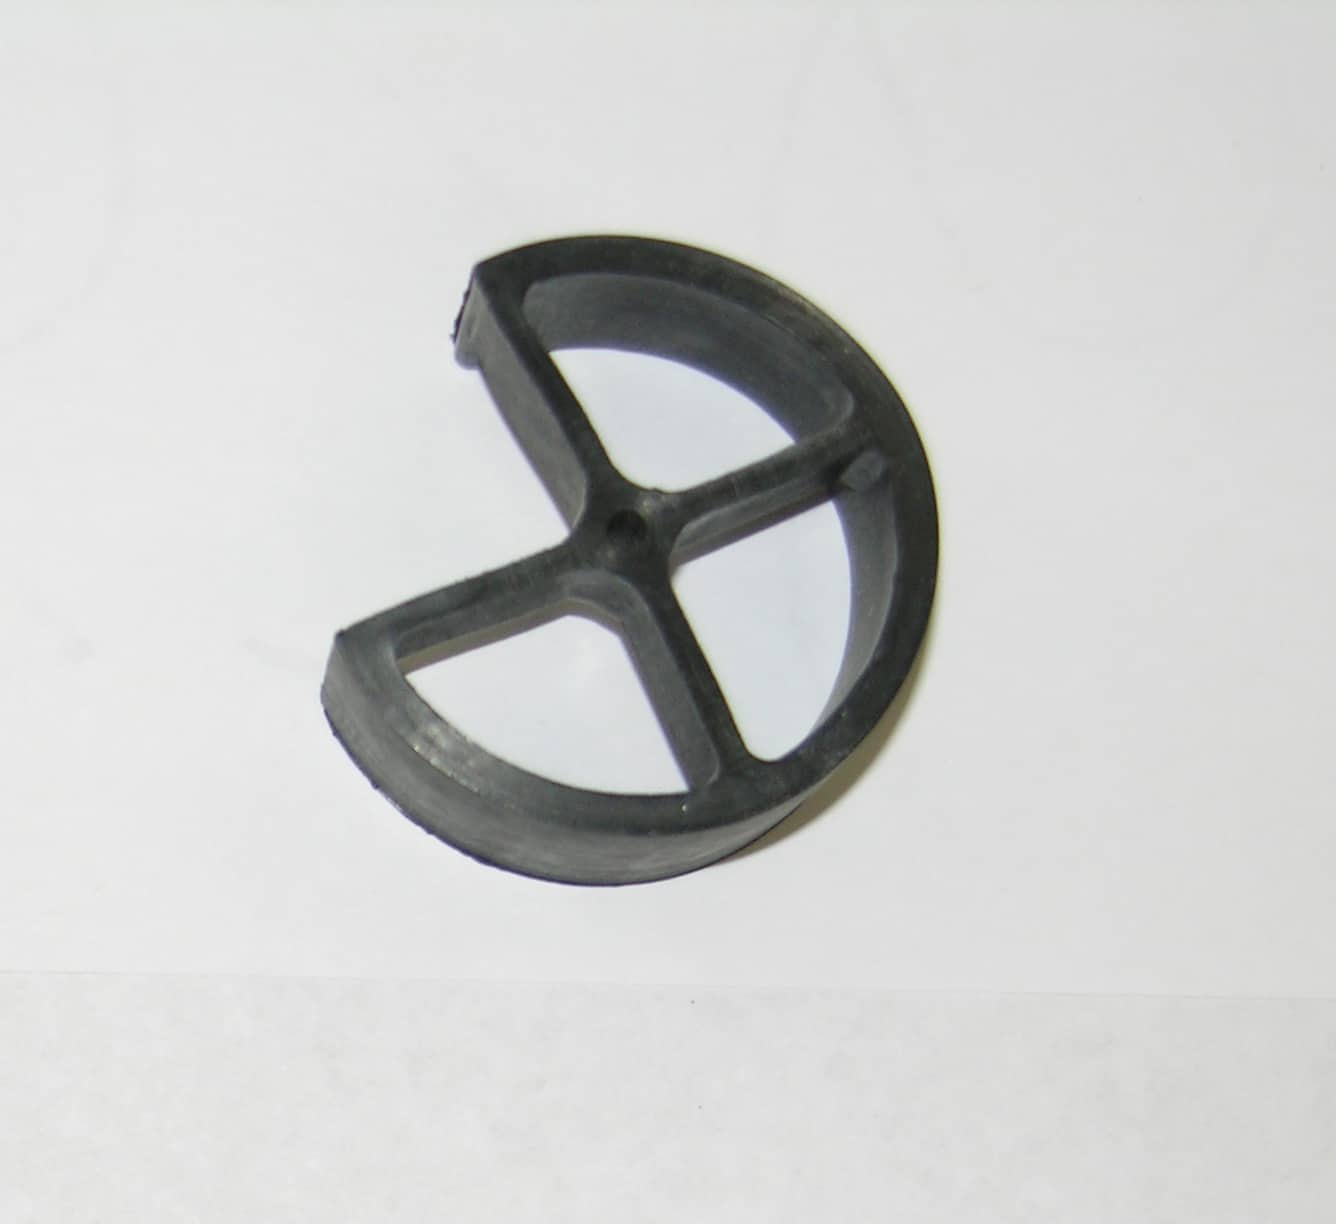 "Drain- Grate Rubber 1 1/2"" Dia (Semi-Circle) Rubber"